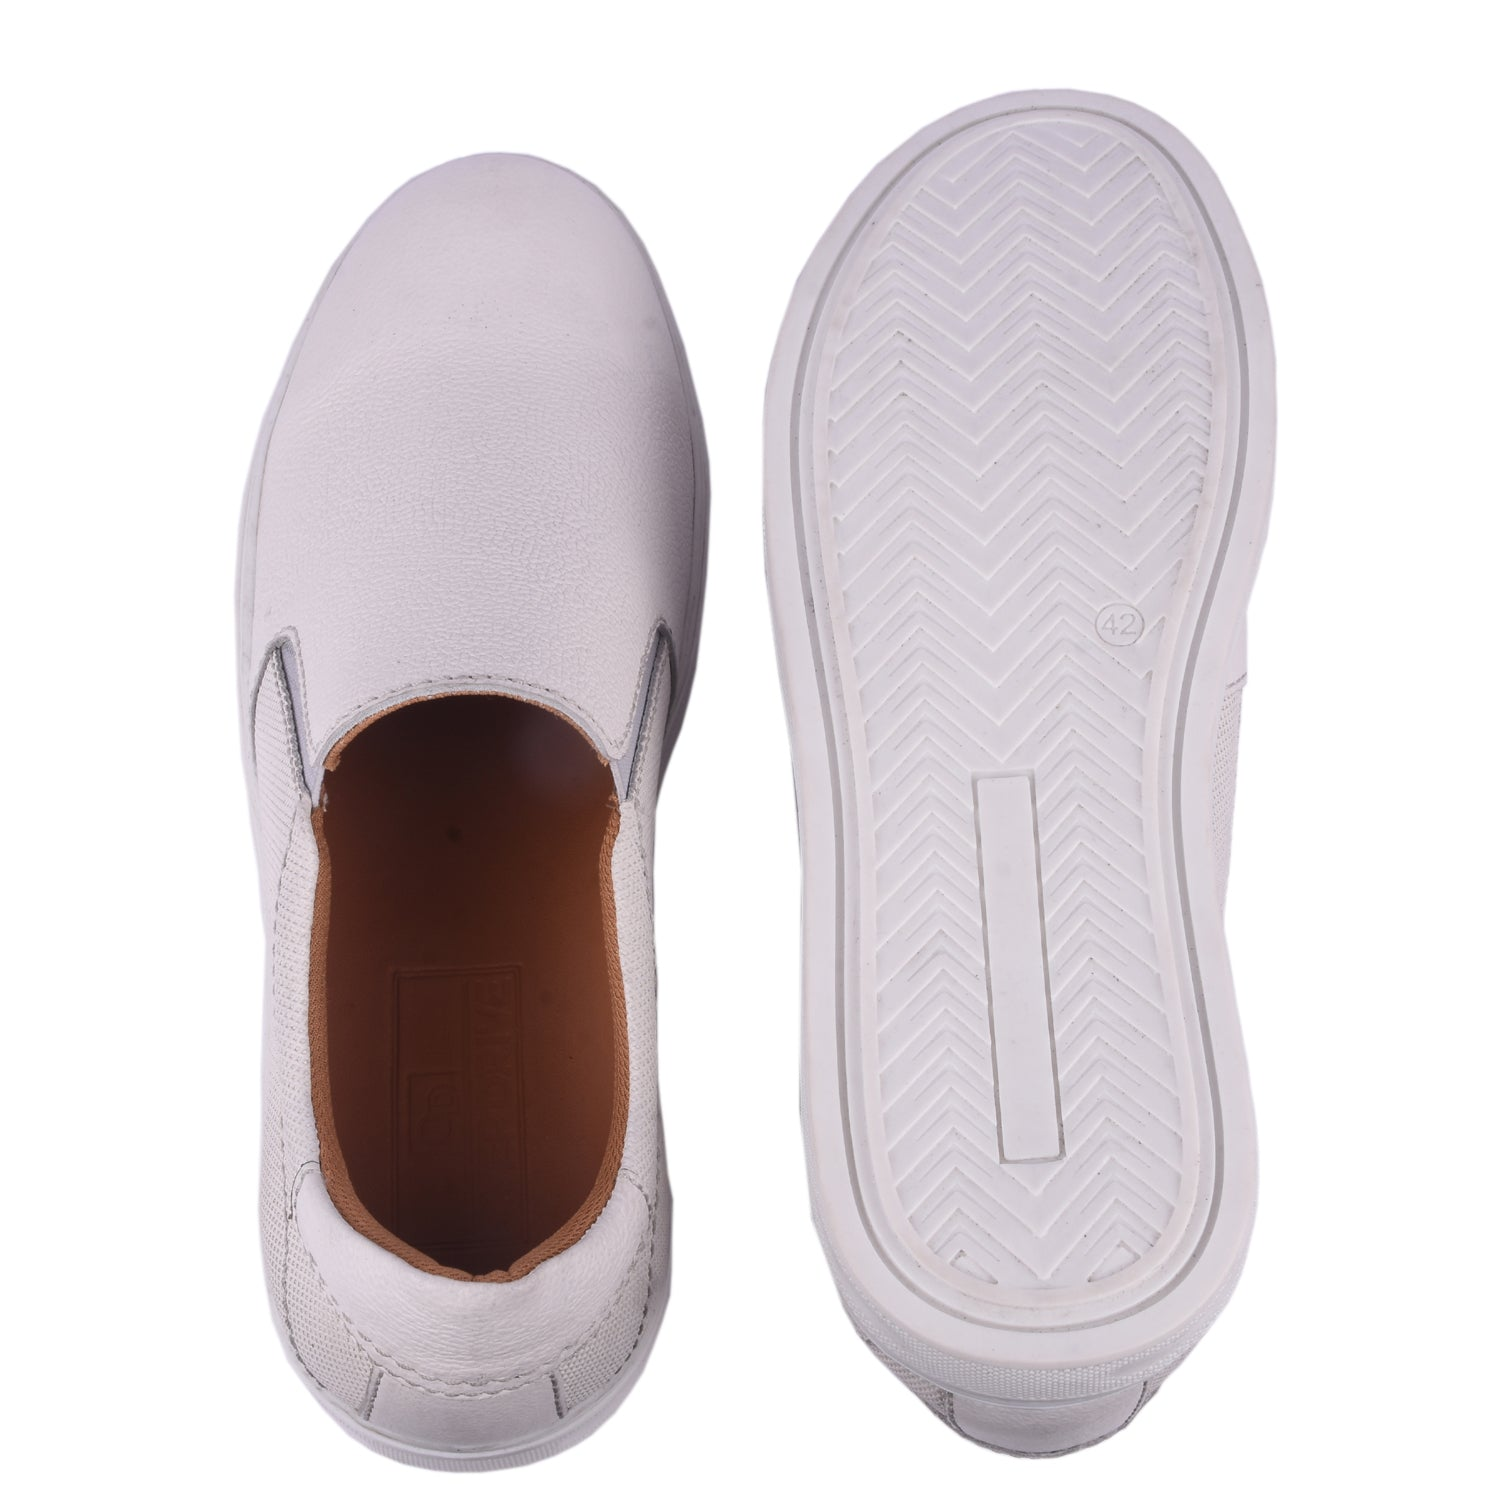 Step up Frost White Slip-on Shoe.